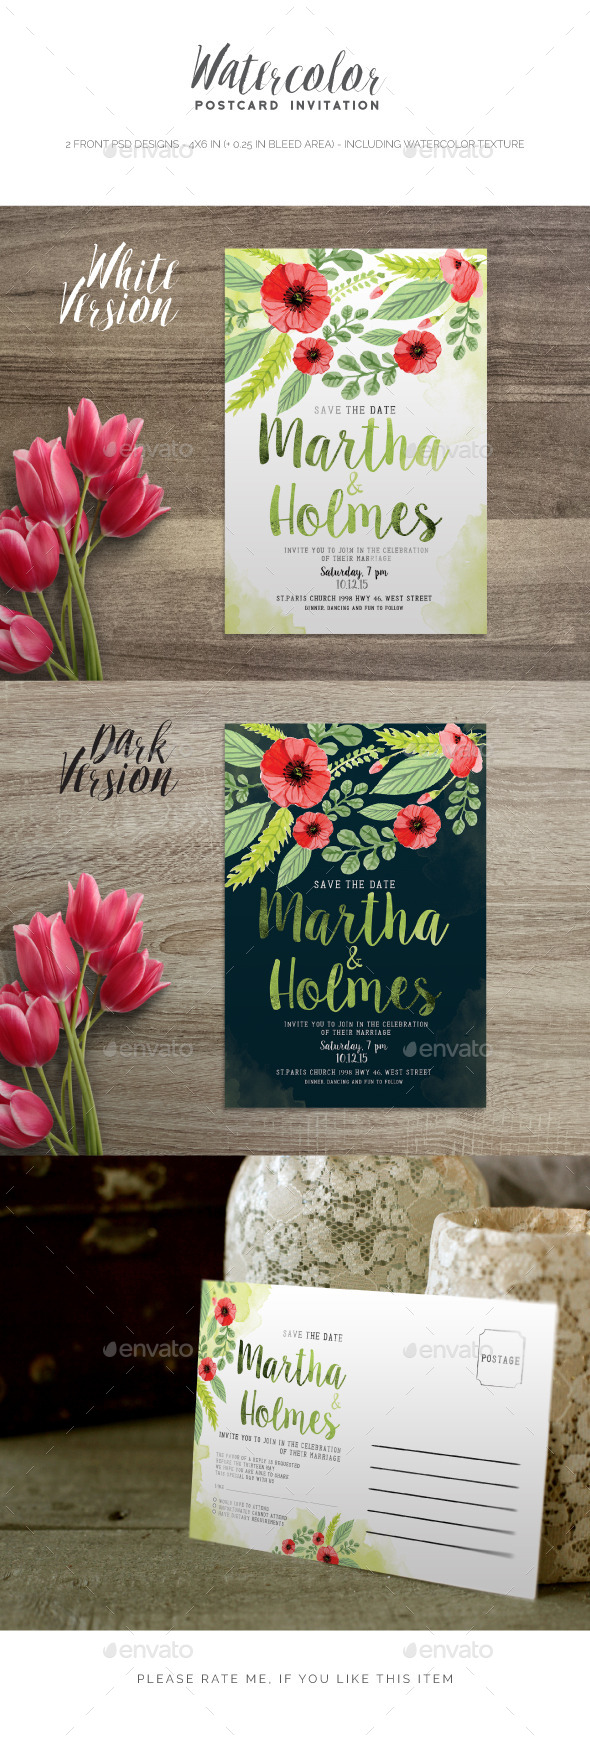 Watercolor Postcard Invitation  - Invitations Cards & Invites